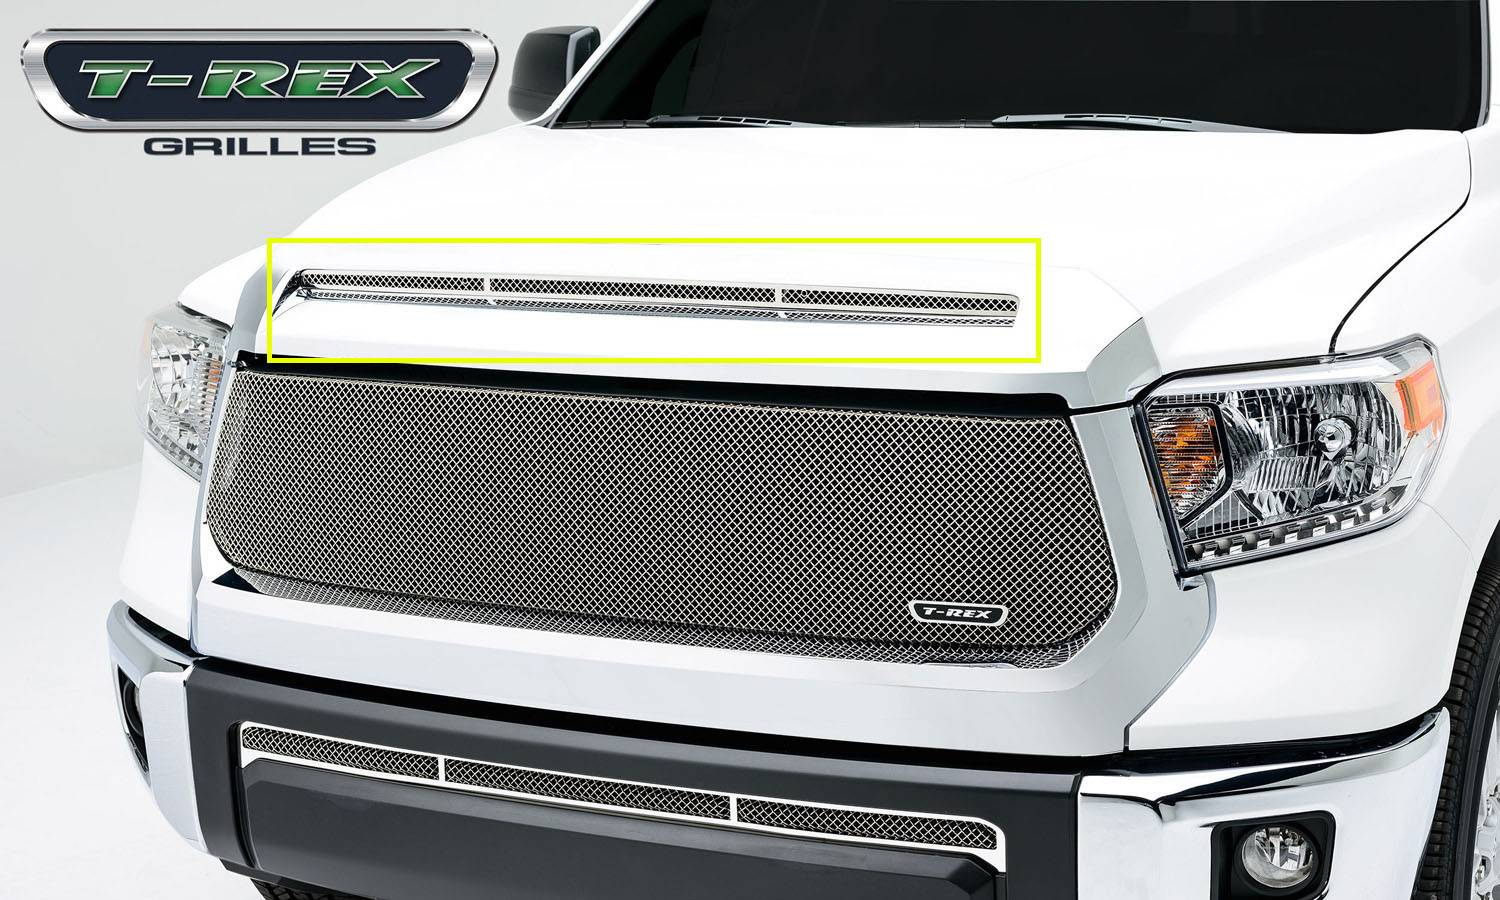 T-REX Grilles - Toyota Tundra  T1 Series Grille, Hood, Overlay, 1 Pc, Polished Stainless Steel - Pt # 119640